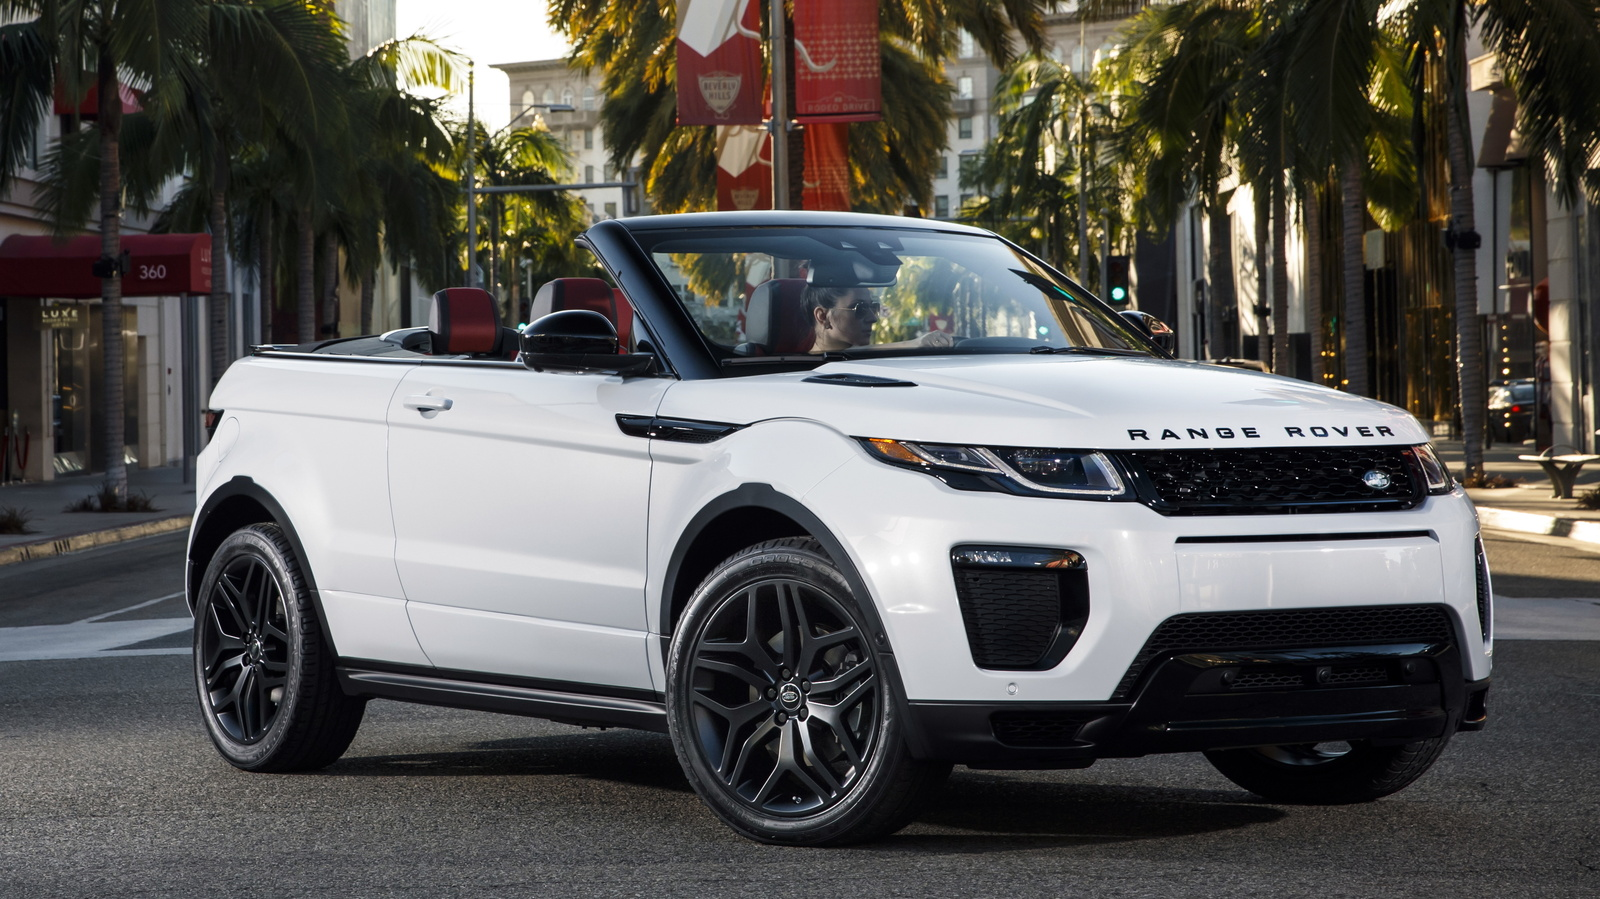 2017 Land Rover Range Rover Evoque For Sale In Los Angeles